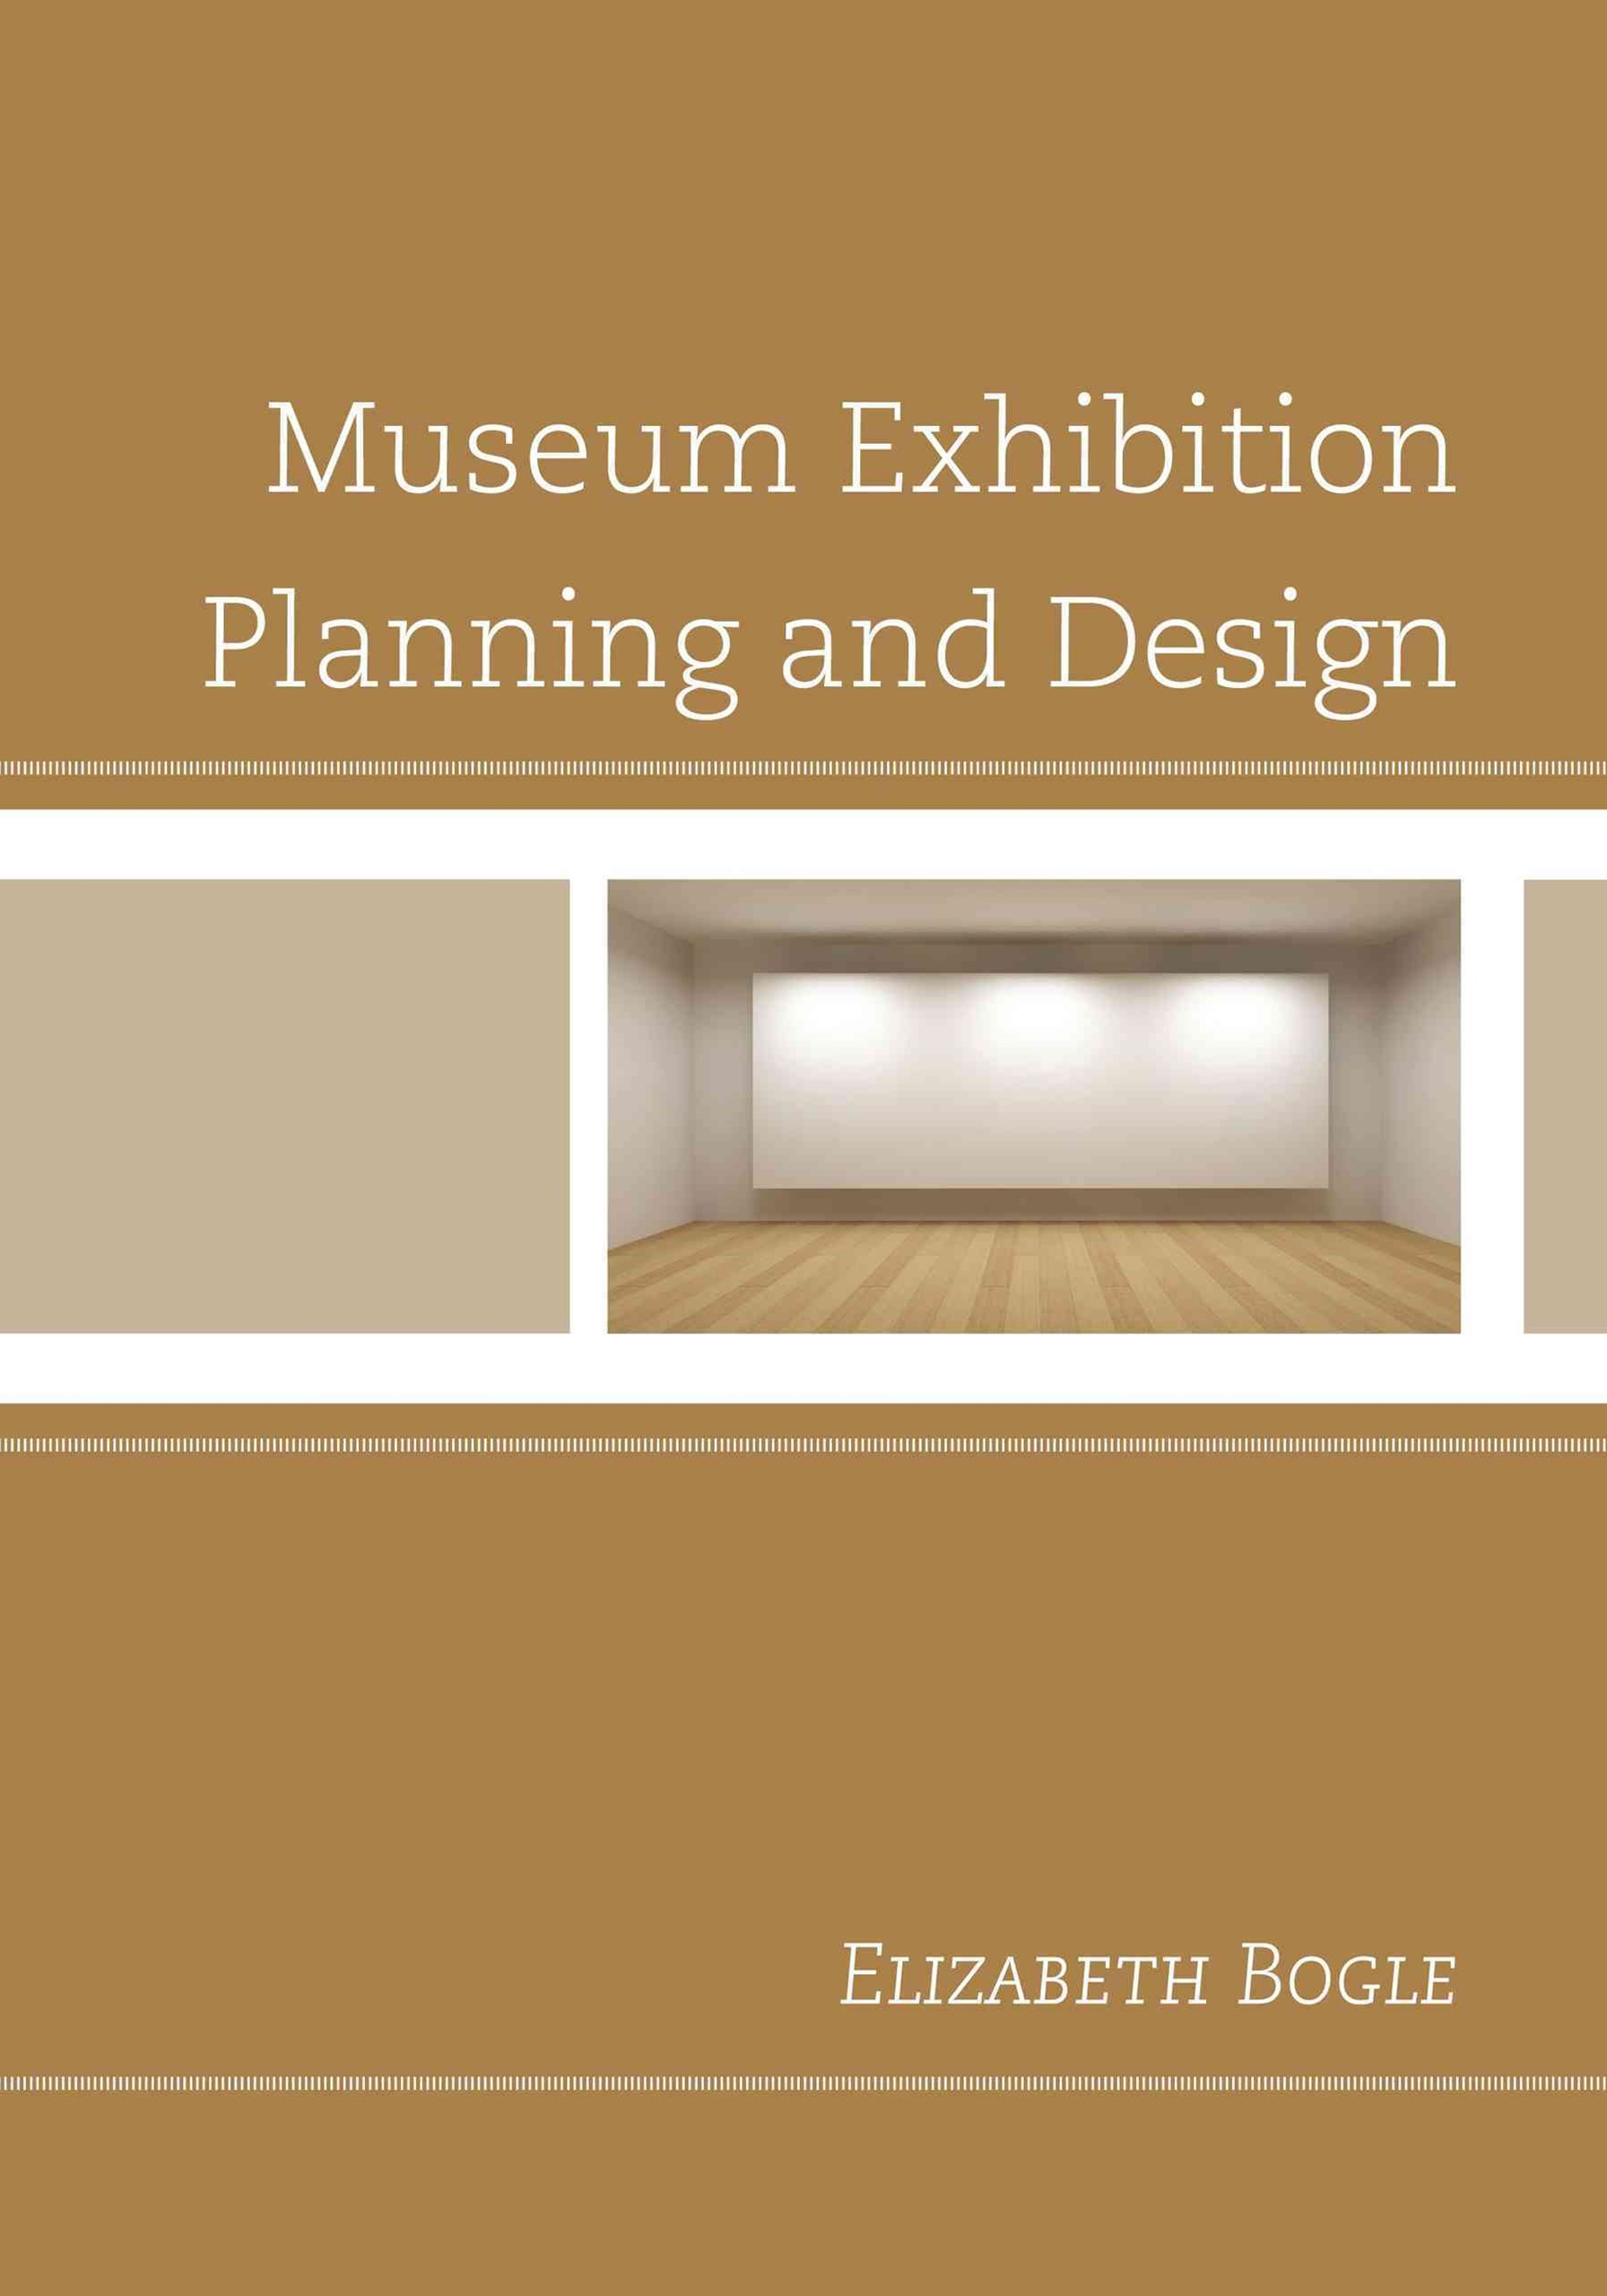 Museum Exhibition Planning and Design